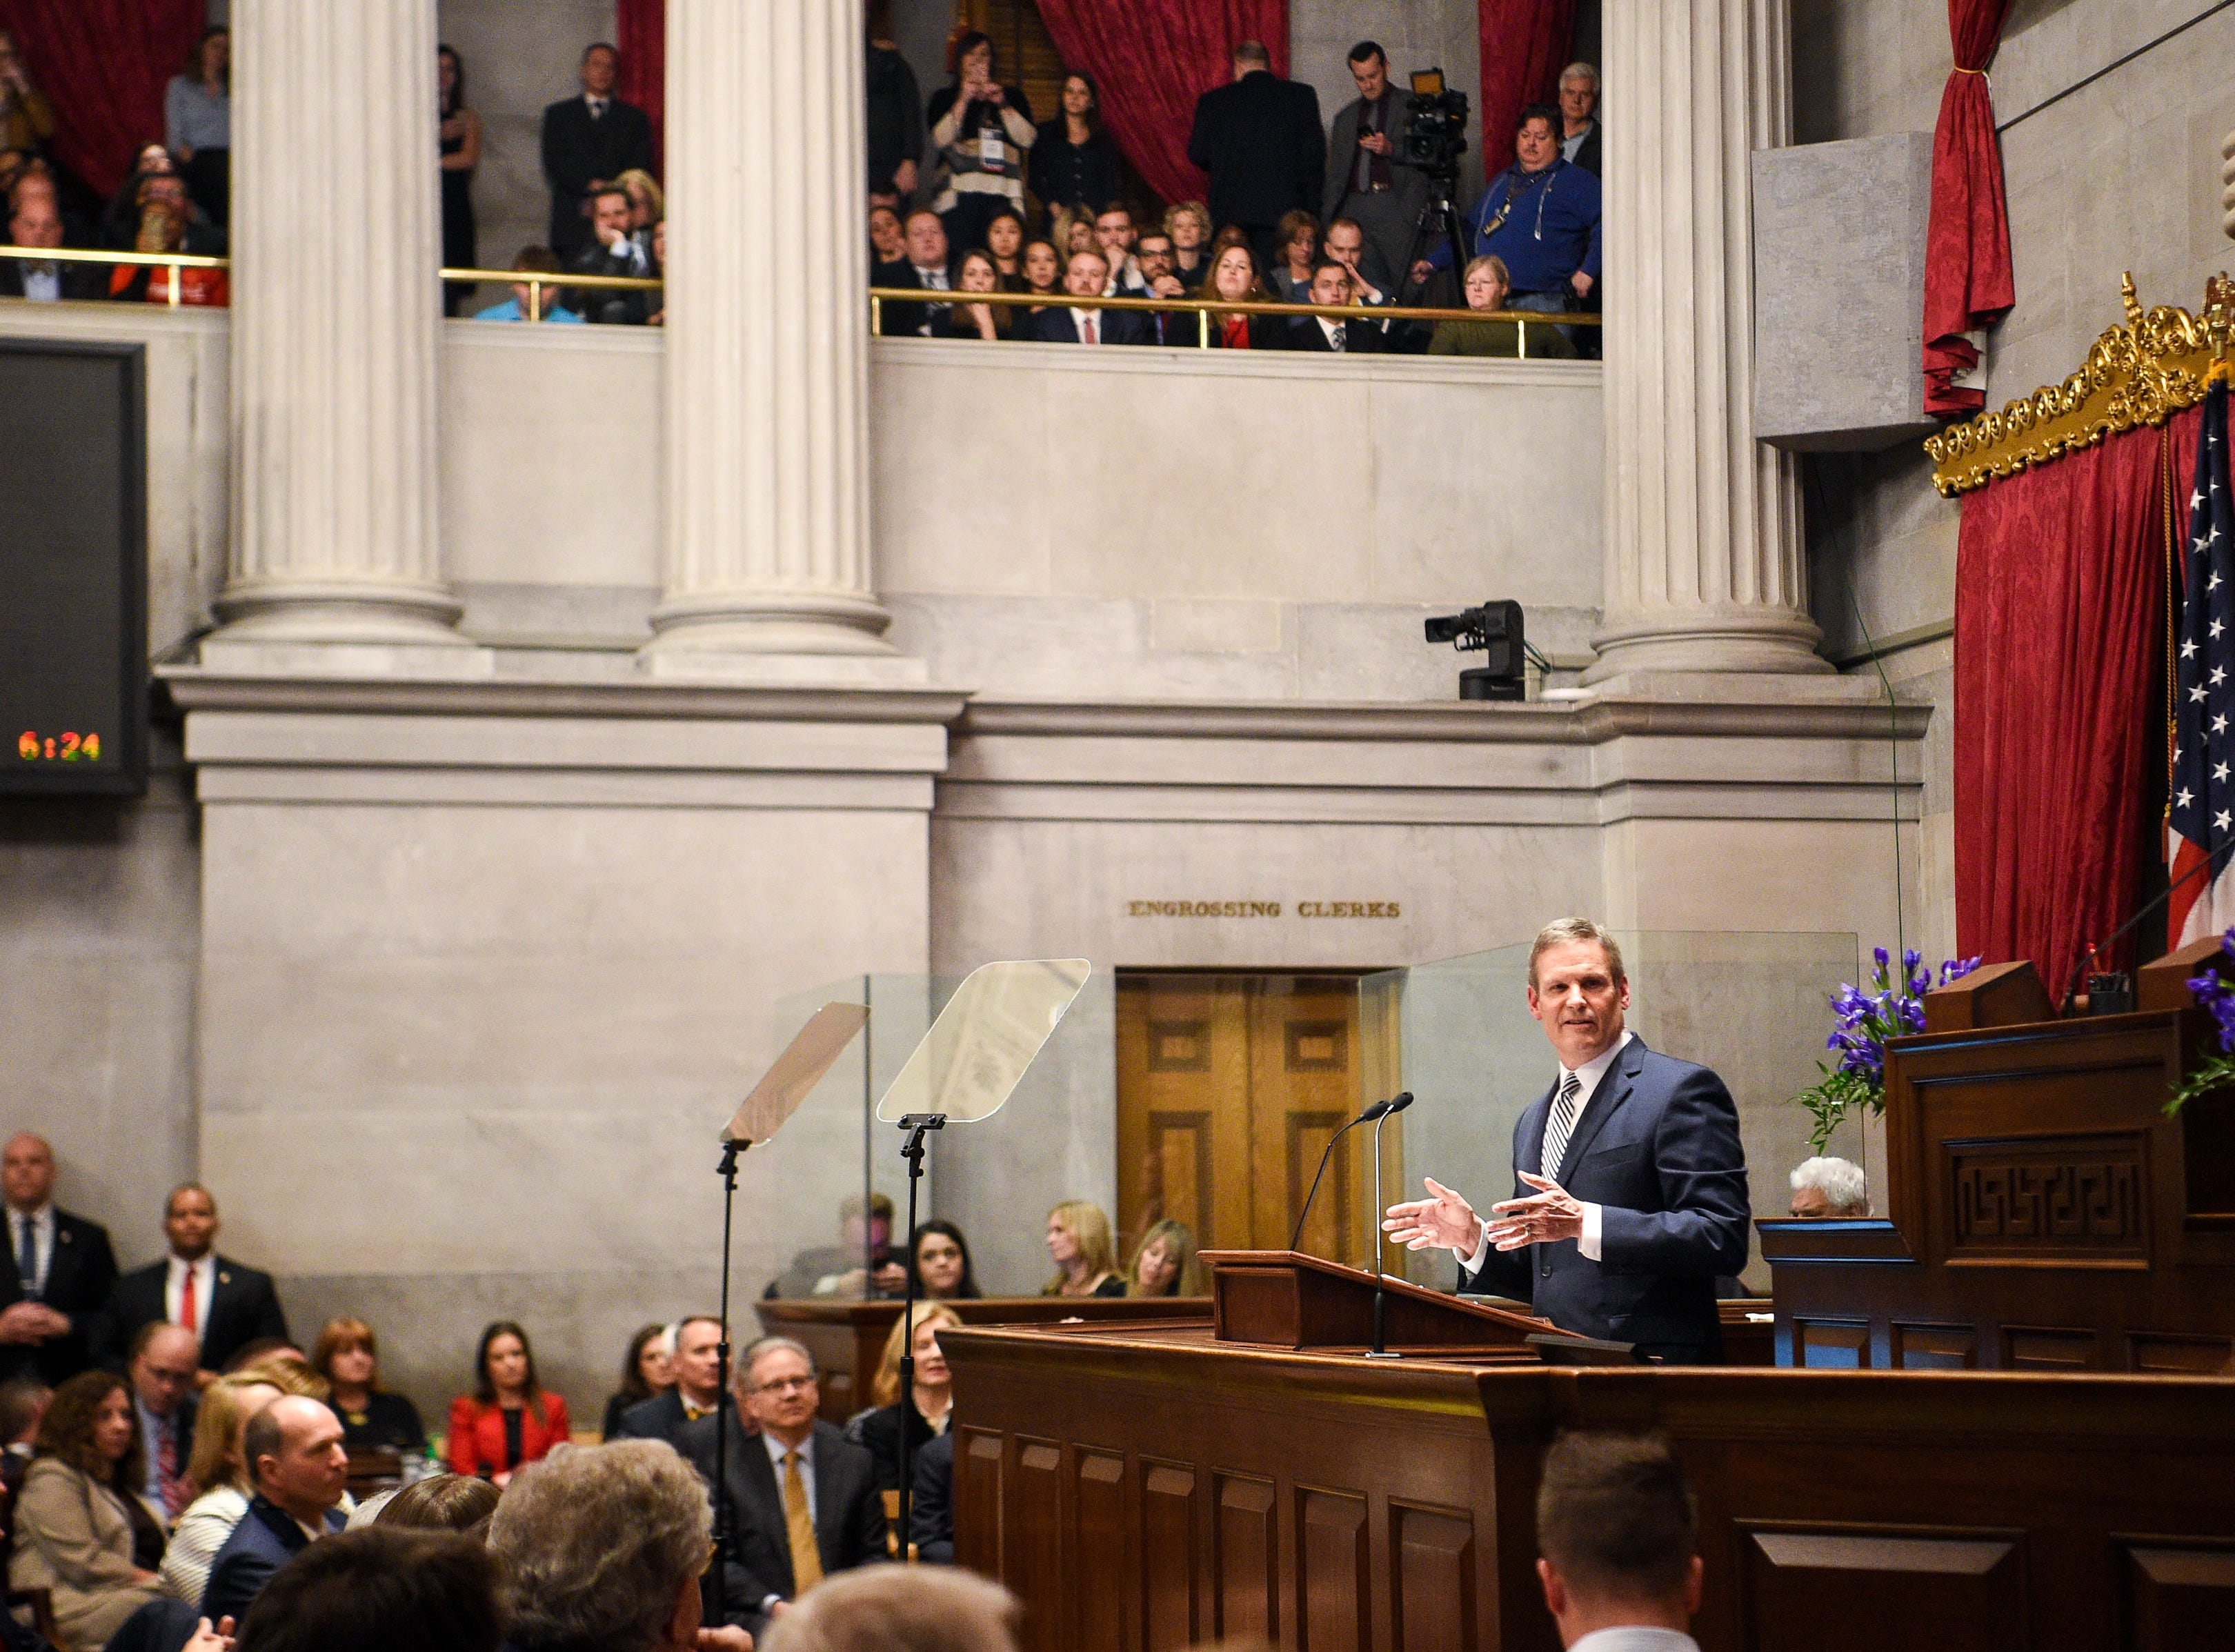 Gov. Bill Lee gives his first State of the State address before a joint session of the Tennessee General Assembly inside the House chambers at the state Capitol in Nashville on Monday, March 4, 2019.